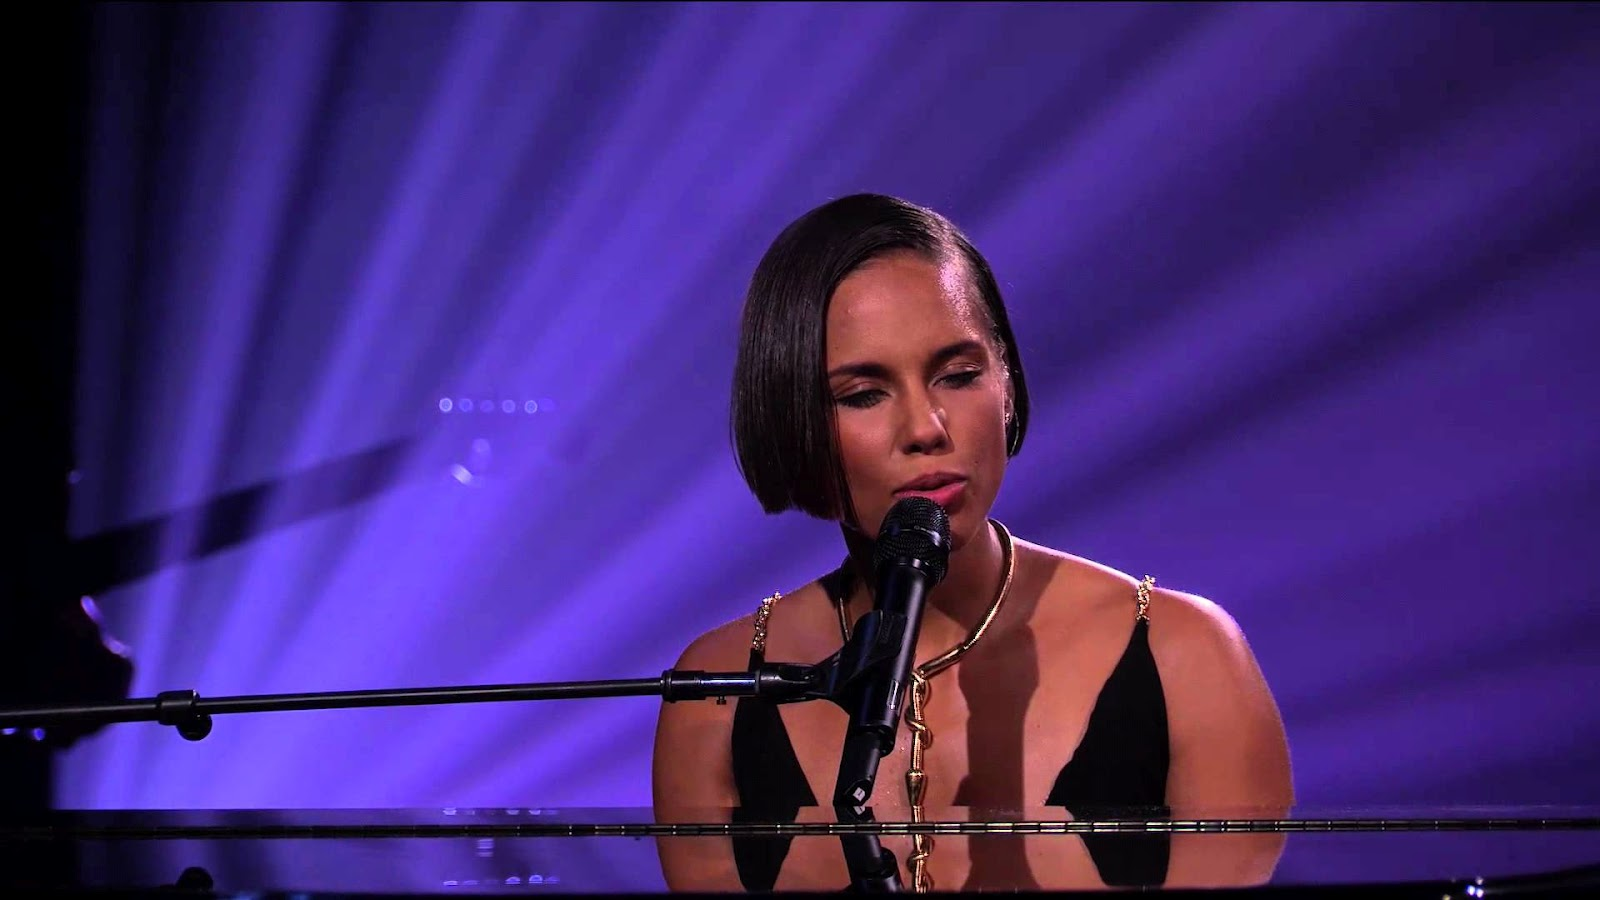 24/7: Alicia Keys - iTunes Festival 2012 - Set List Alicia Keys Songs